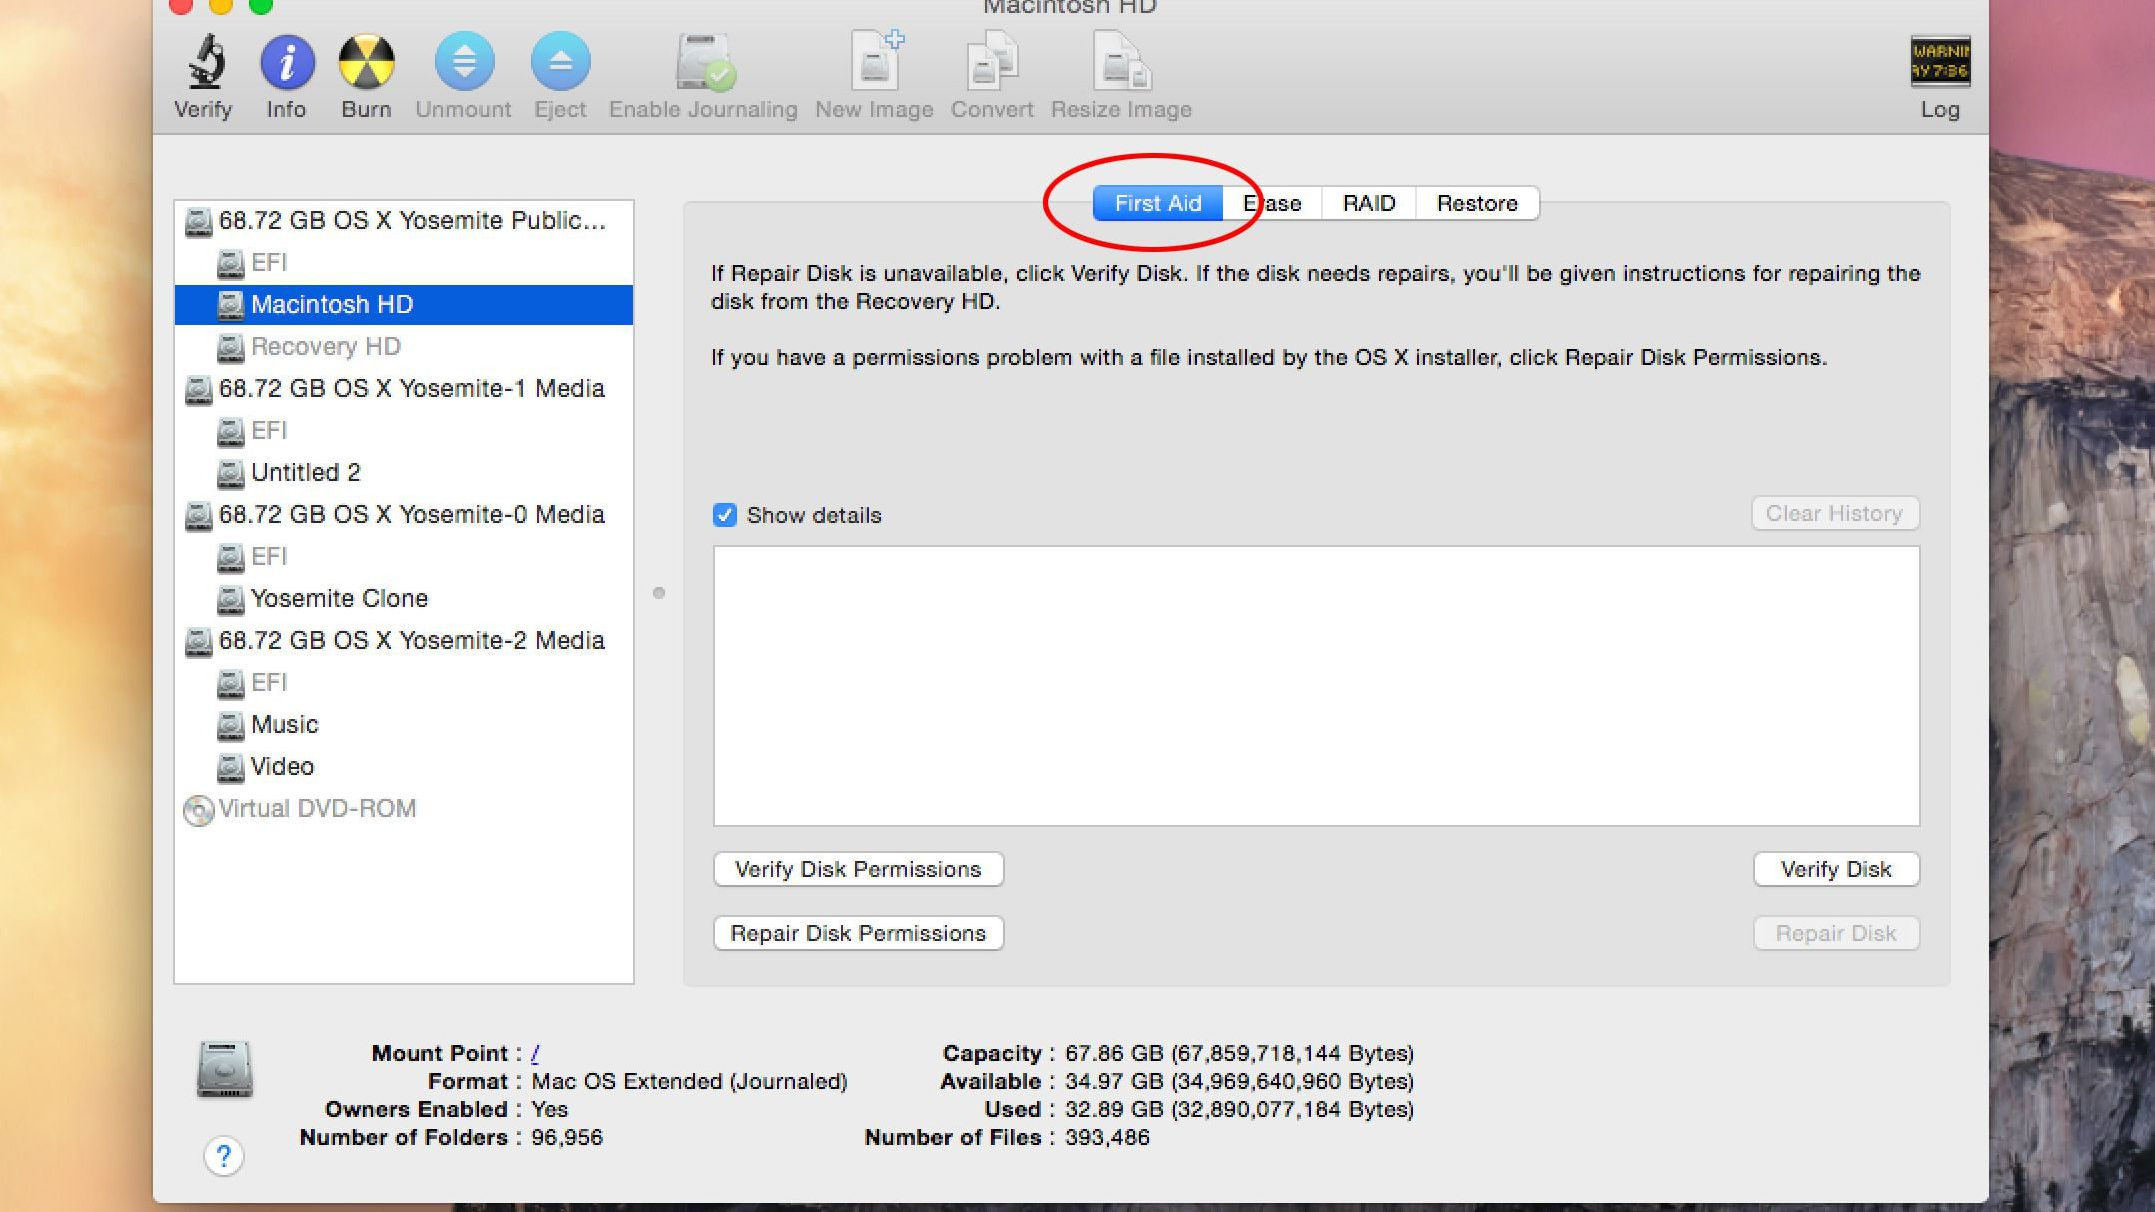 Repairing Hard Drives and Permissions With Disk Utility